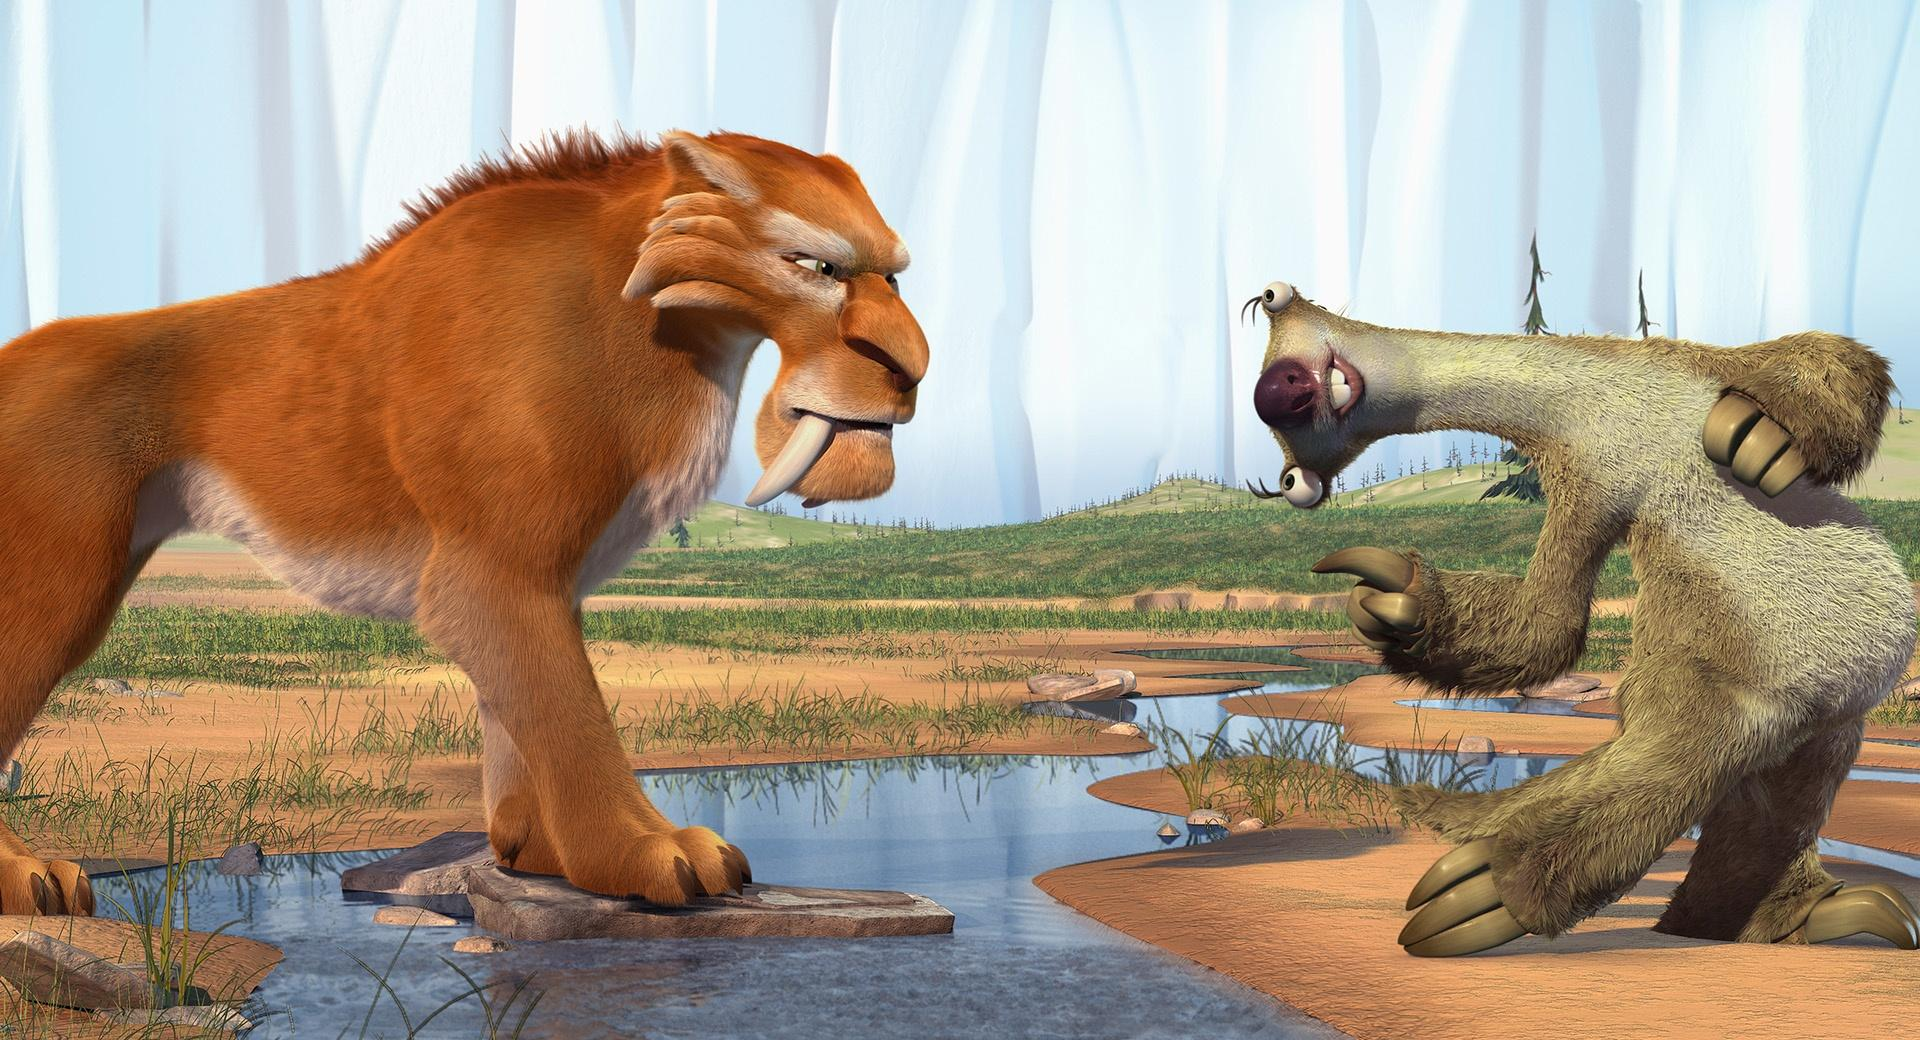 Ice Age 2 The Meltdown wallpapers HD quality